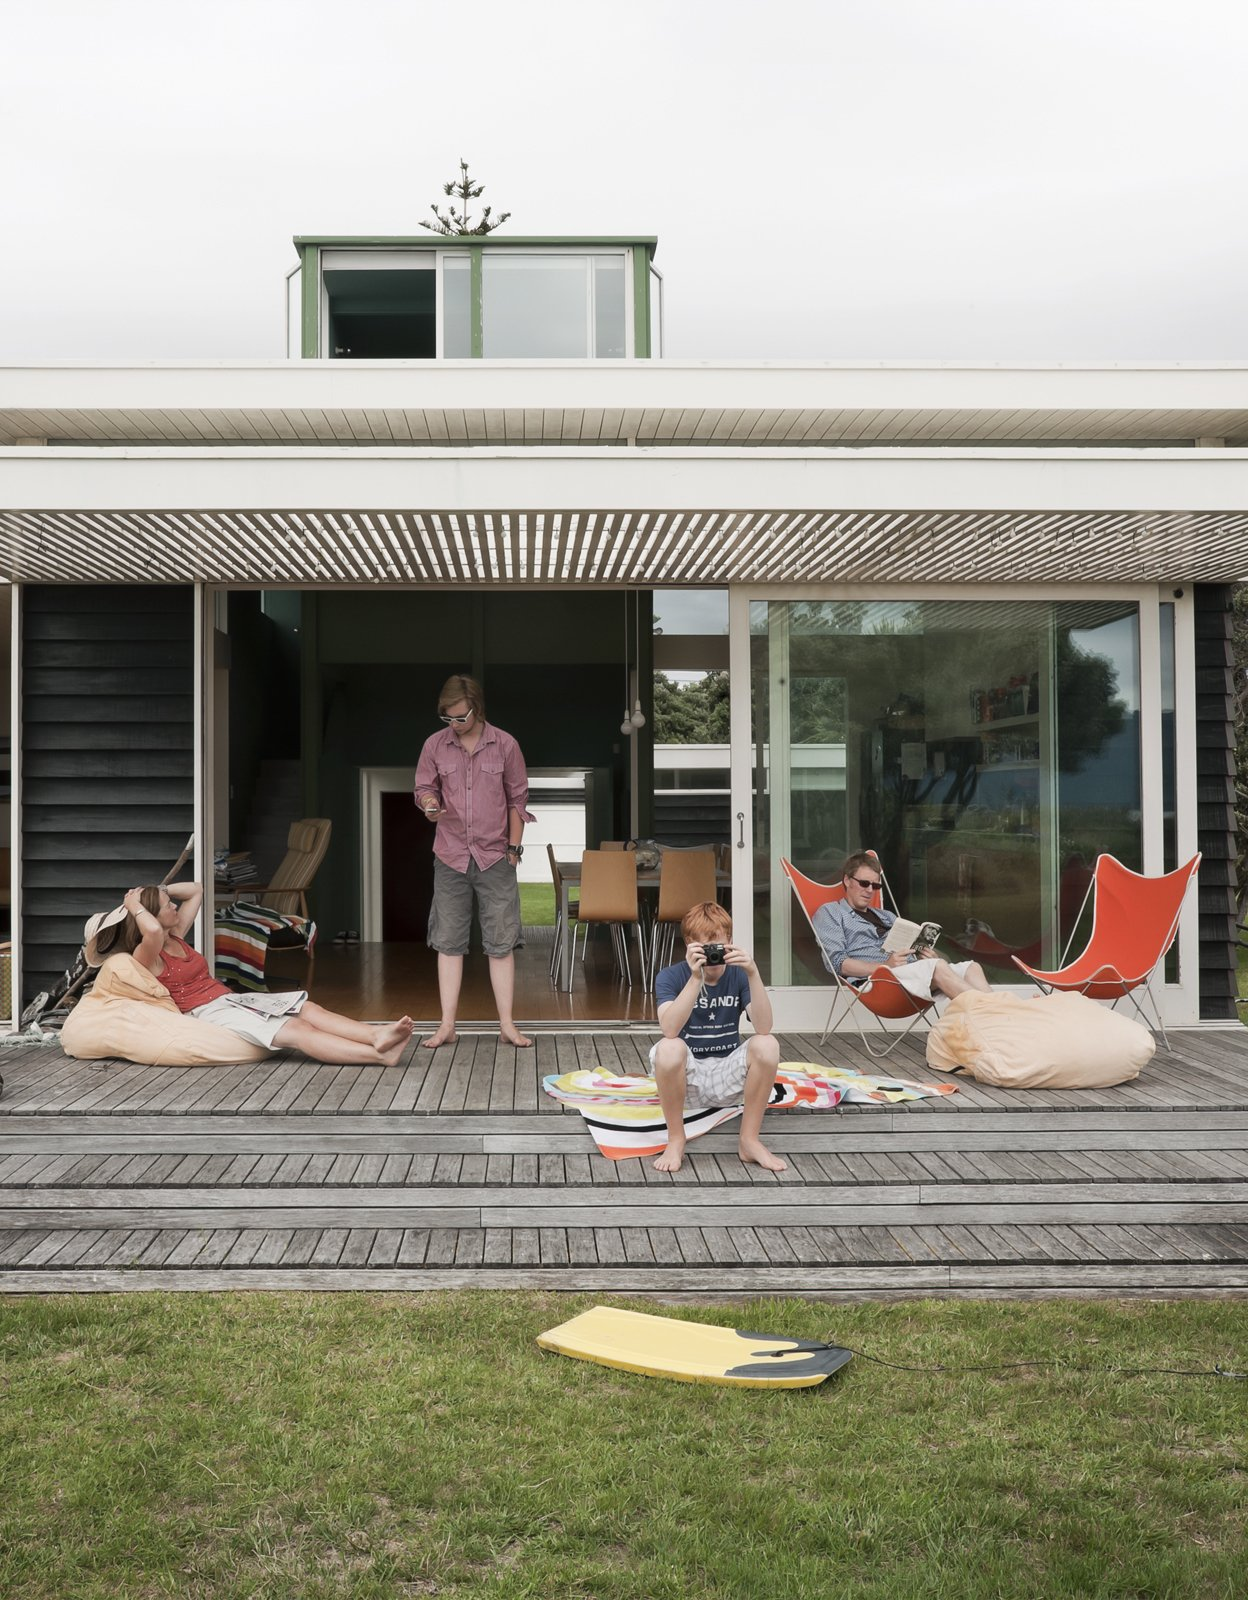 The family spends summers and school vacations at the bach. New Zealand's relatively mild winters mean they use the house year-round. Tagged: Outdoor, Grass, Wood Patio, Porch, Deck, and Small Patio, Porch, Deck.  Vacation Homes by Brandi Andres from Bach to the Beach